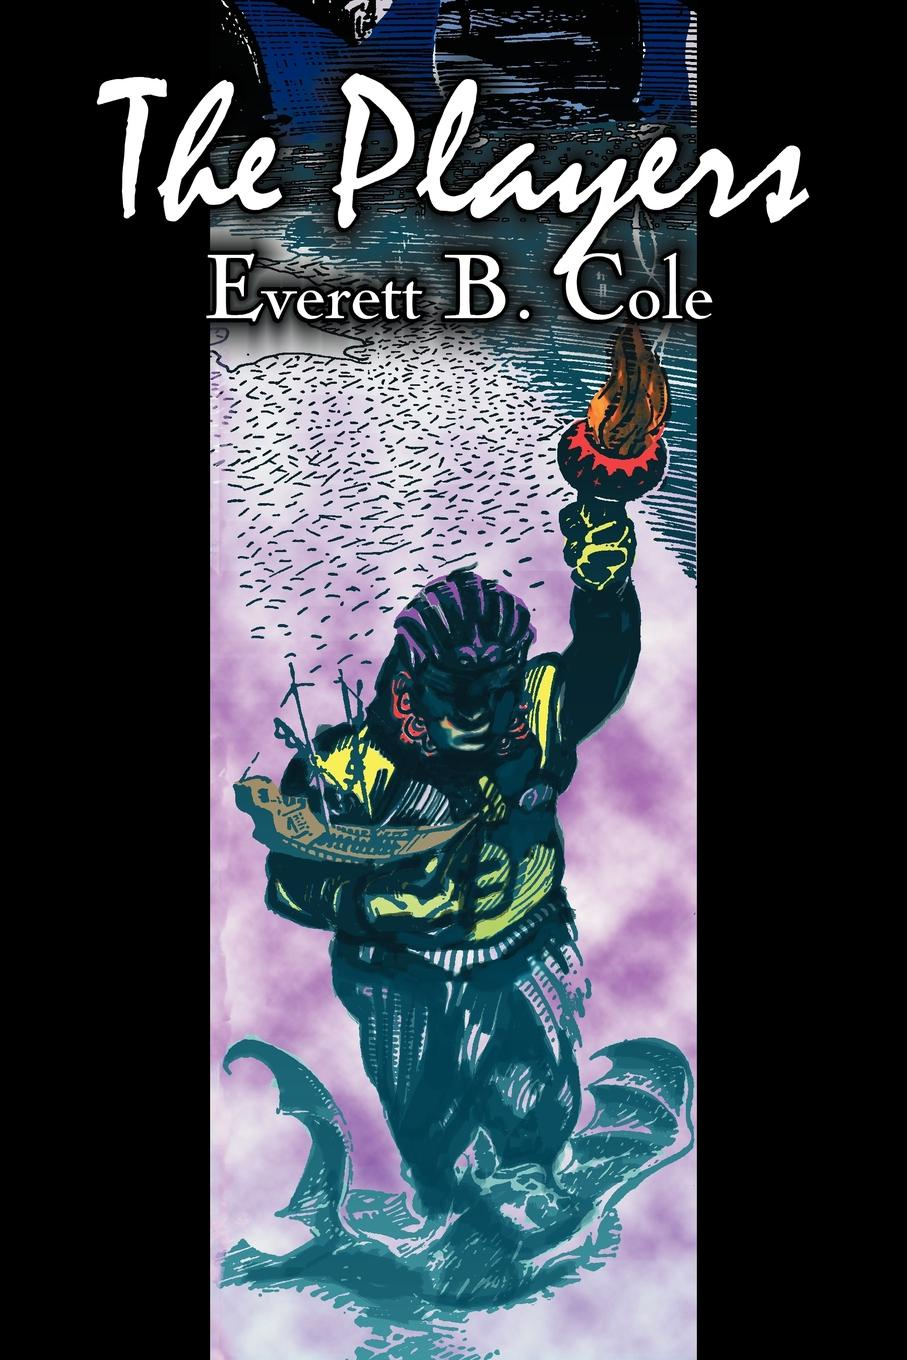 The Players by Everett B. Cole, Science Fiction, Adventure